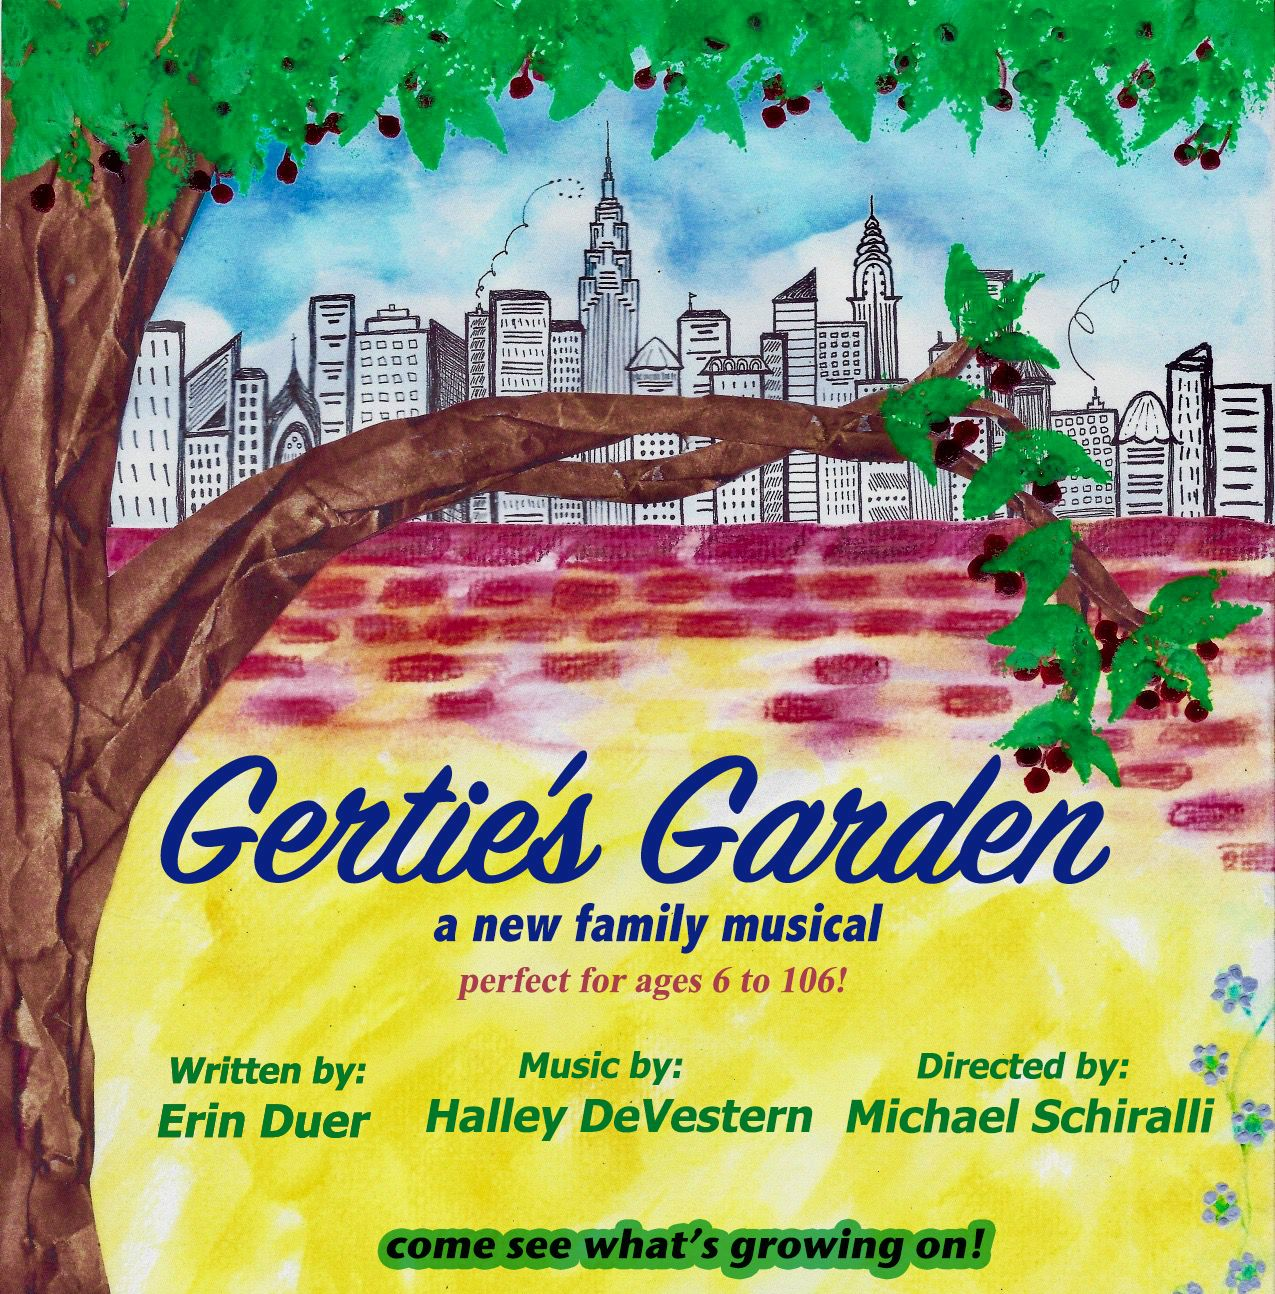 gerties garden homepage art new.jpg